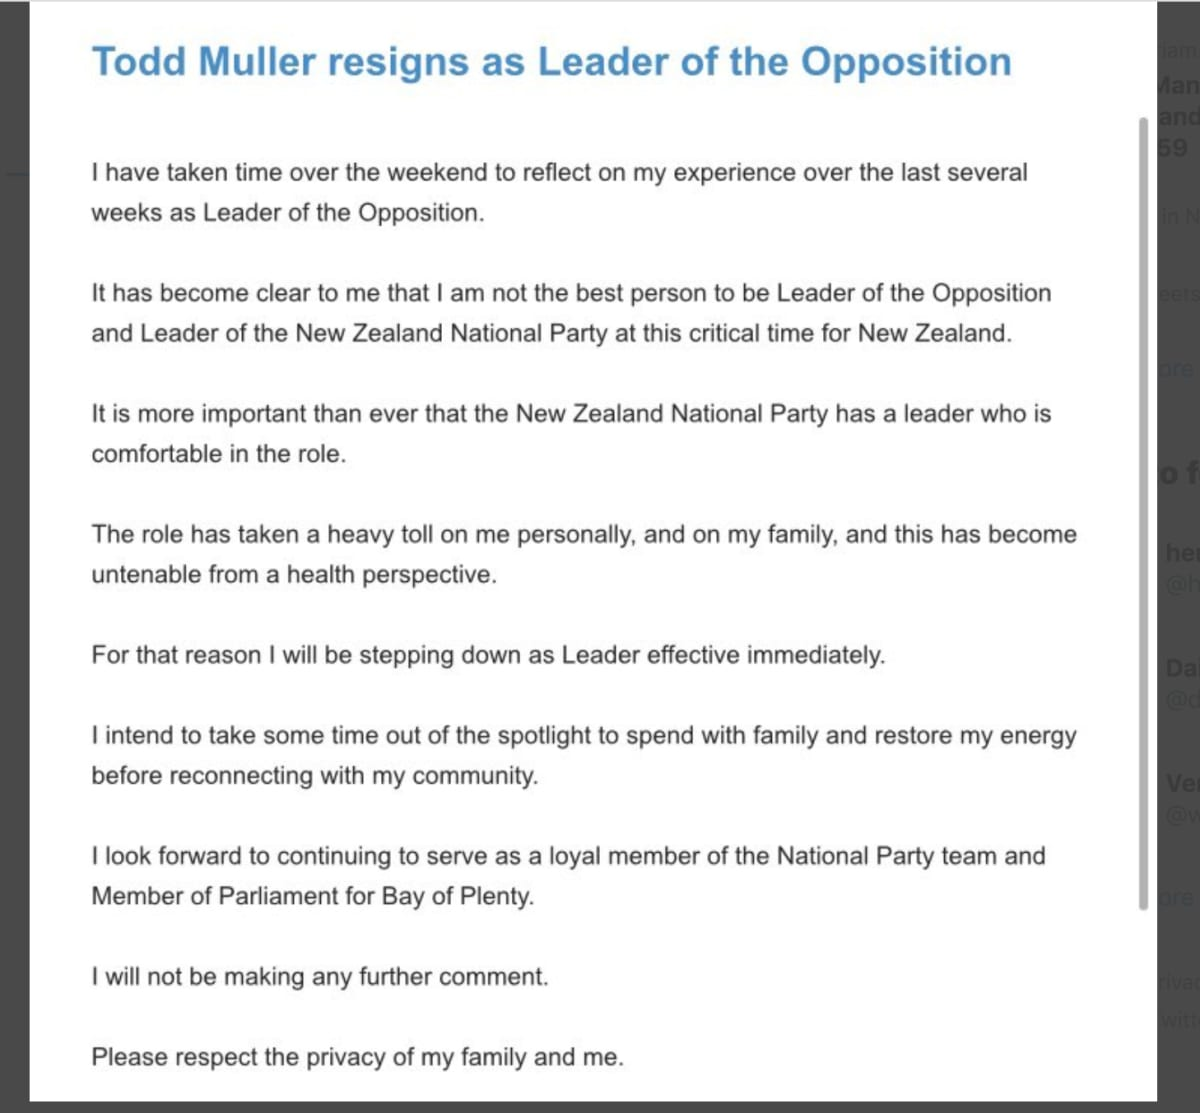 New Zealand opposition leader resigns two months out from election